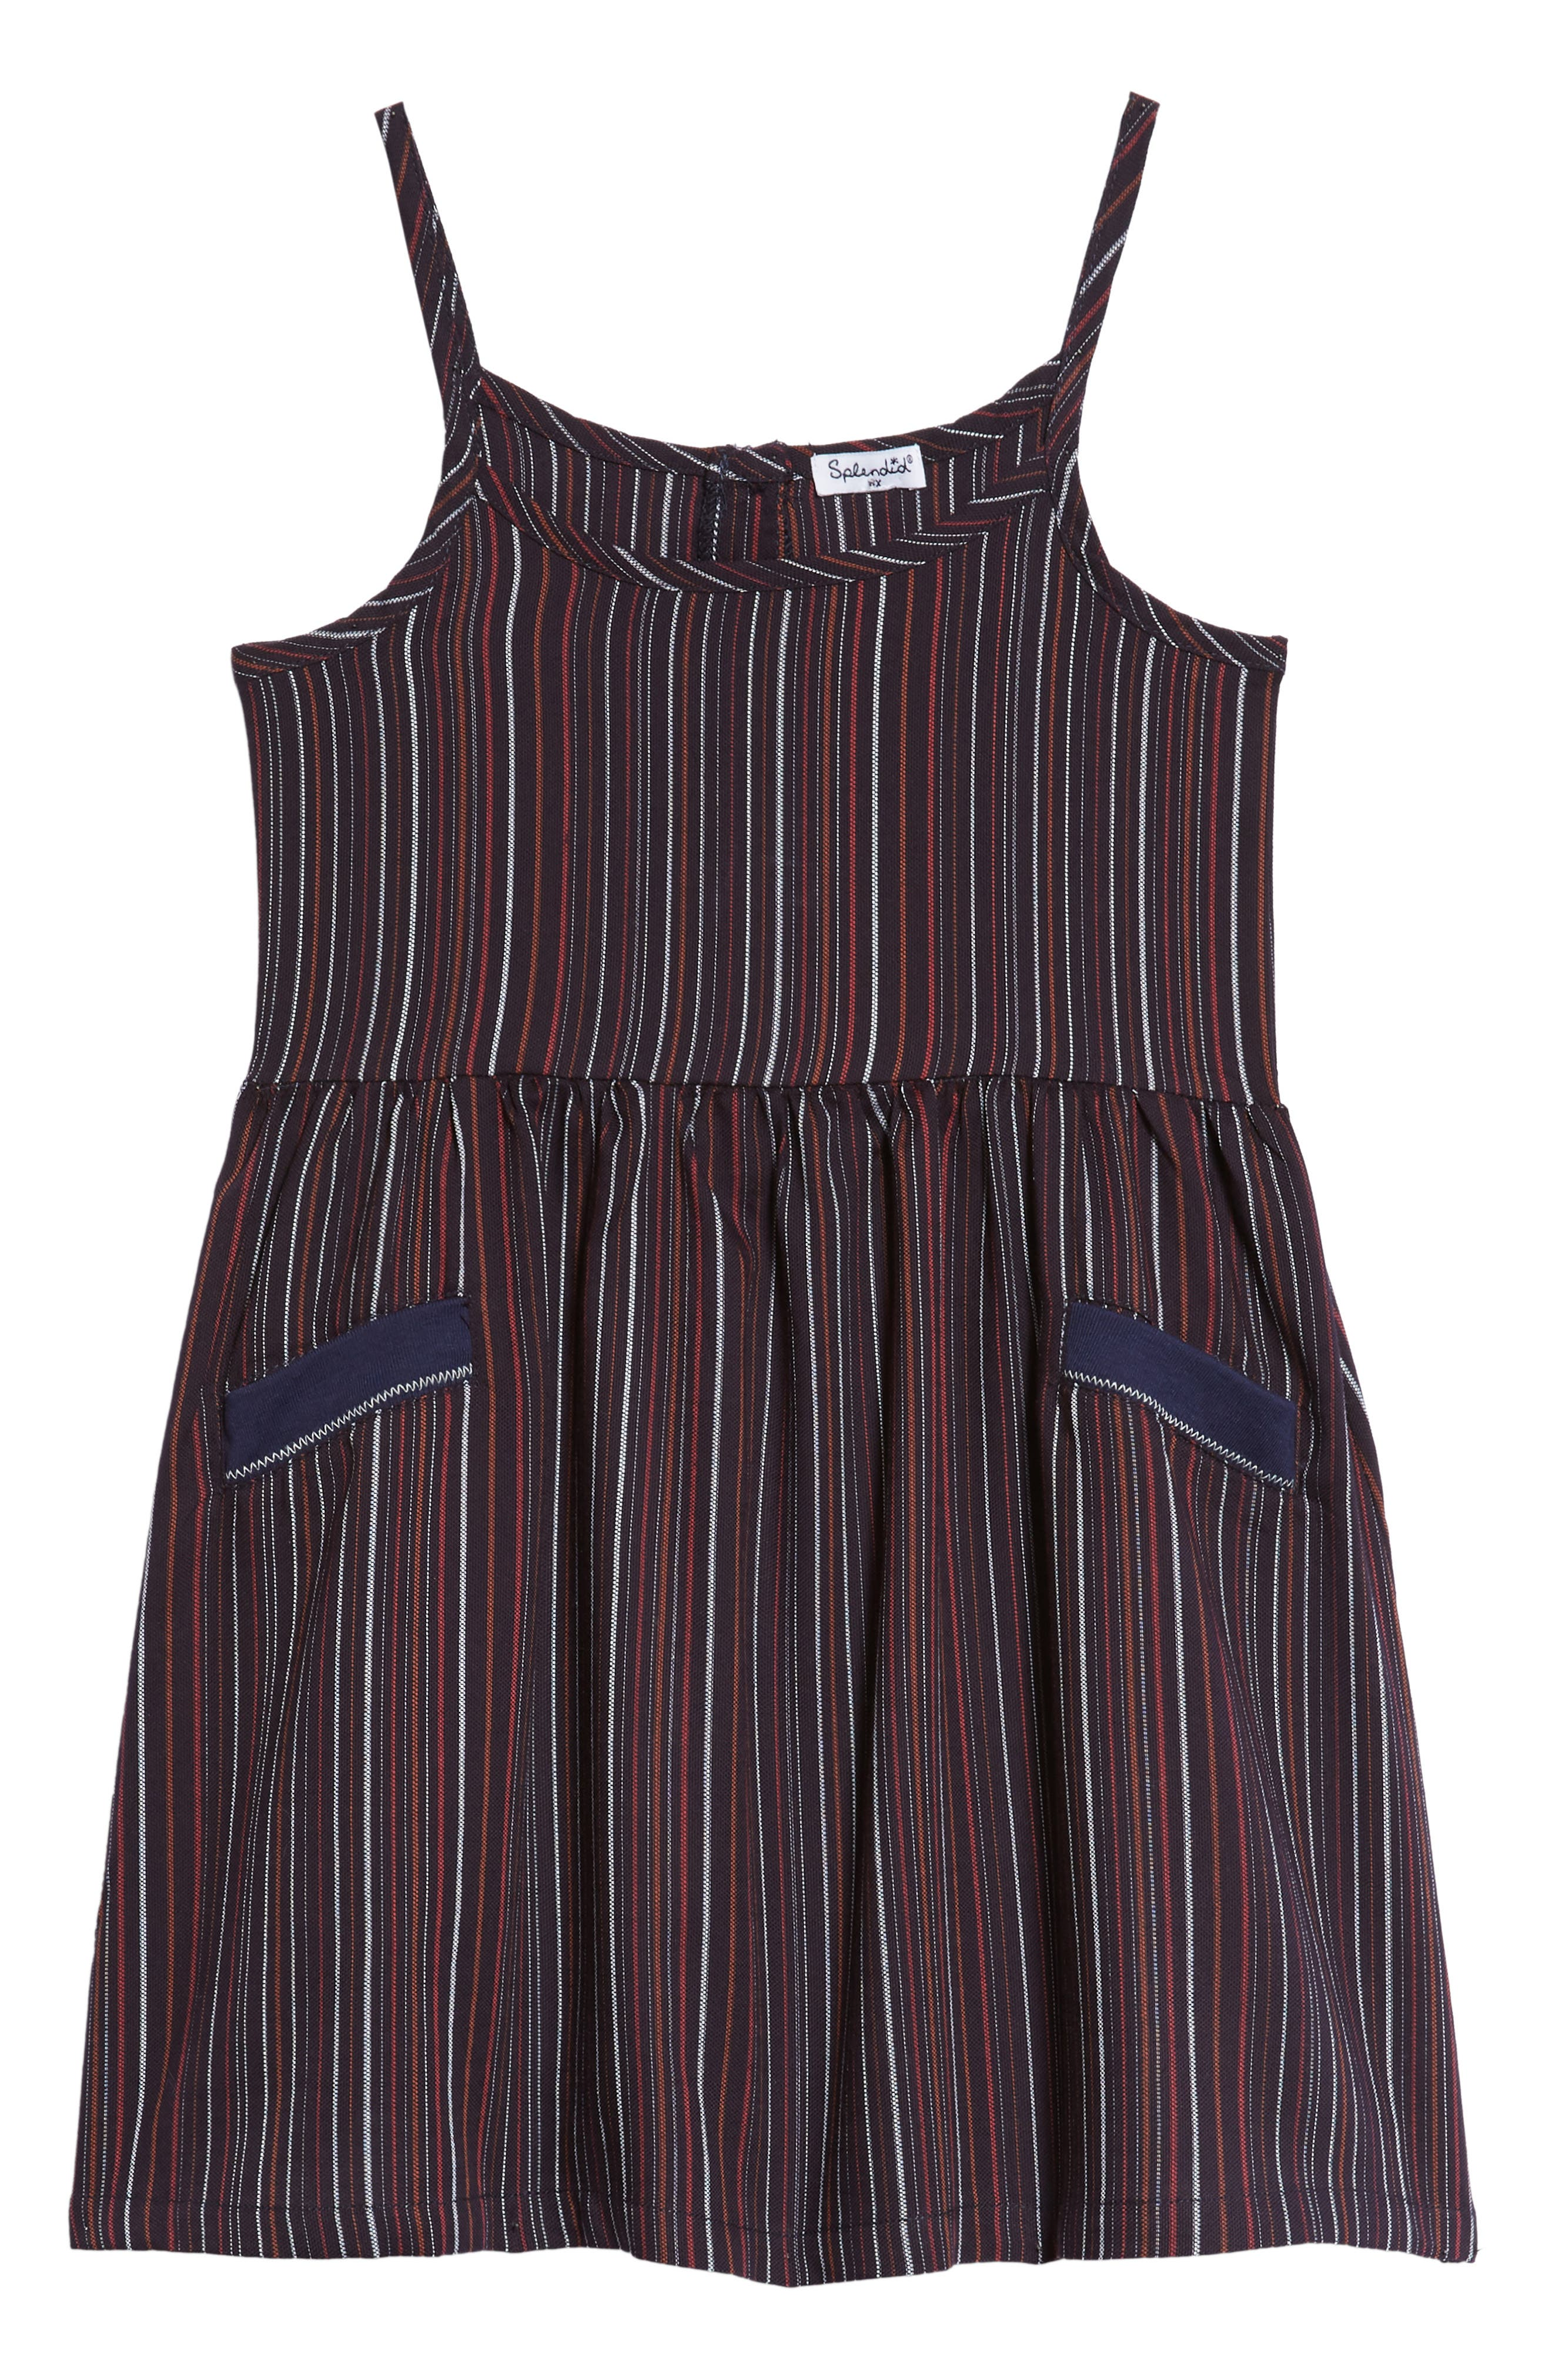 Alternate Image 1 Selected - Splendid Stripe Tank Dress (Toddler Girls & Little Girls)